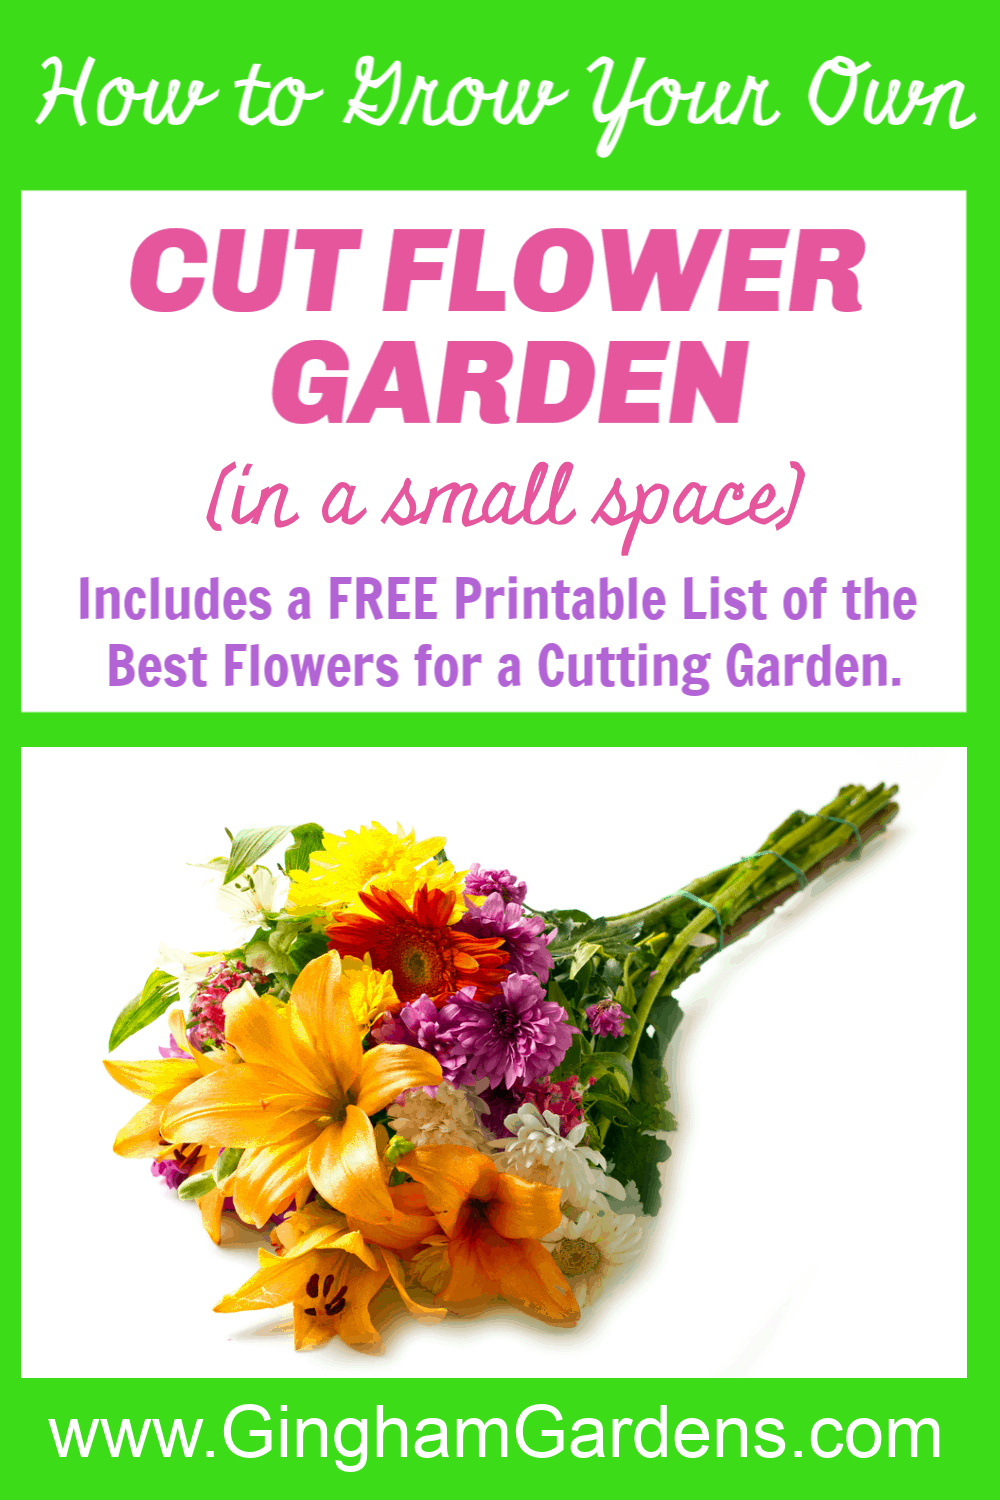 Image of a Flower Bouquet with text overlay - How to Grow Your Own Cut Flower Garden